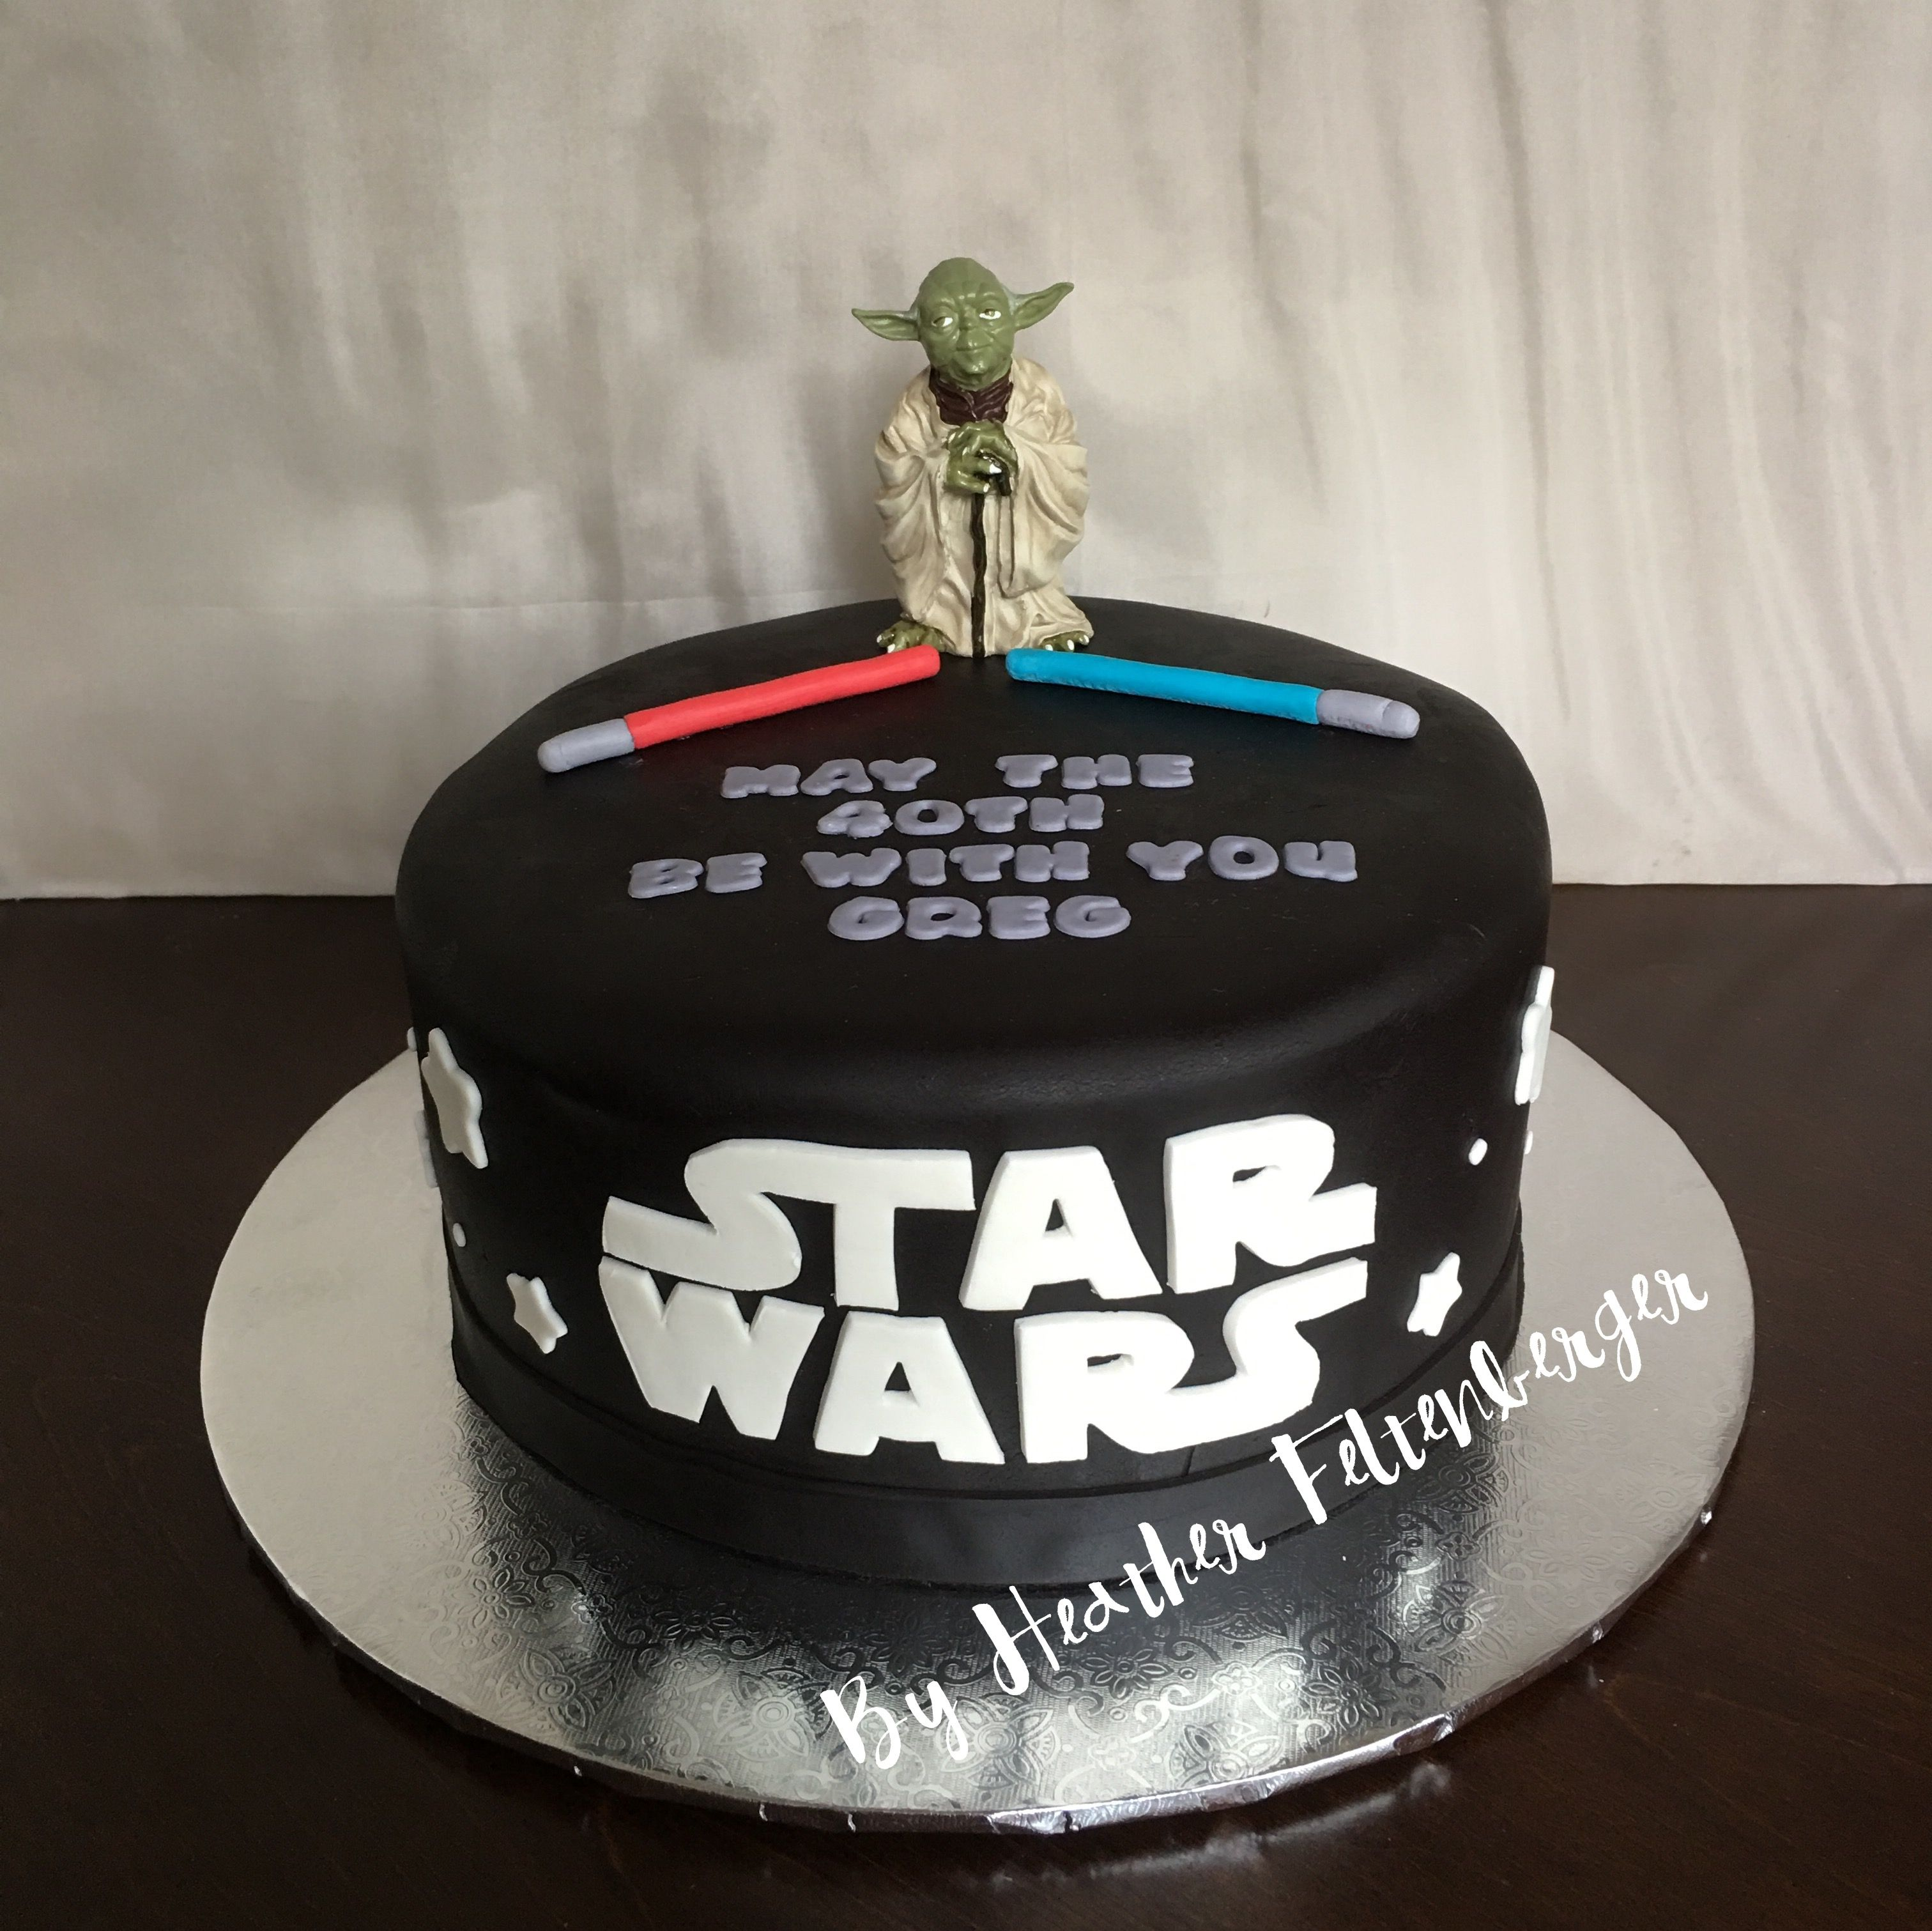 Yoda Birthday Cake Cheaper Than Retail Price Buy Clothing Accessories And Lifestyle Products For Women Men